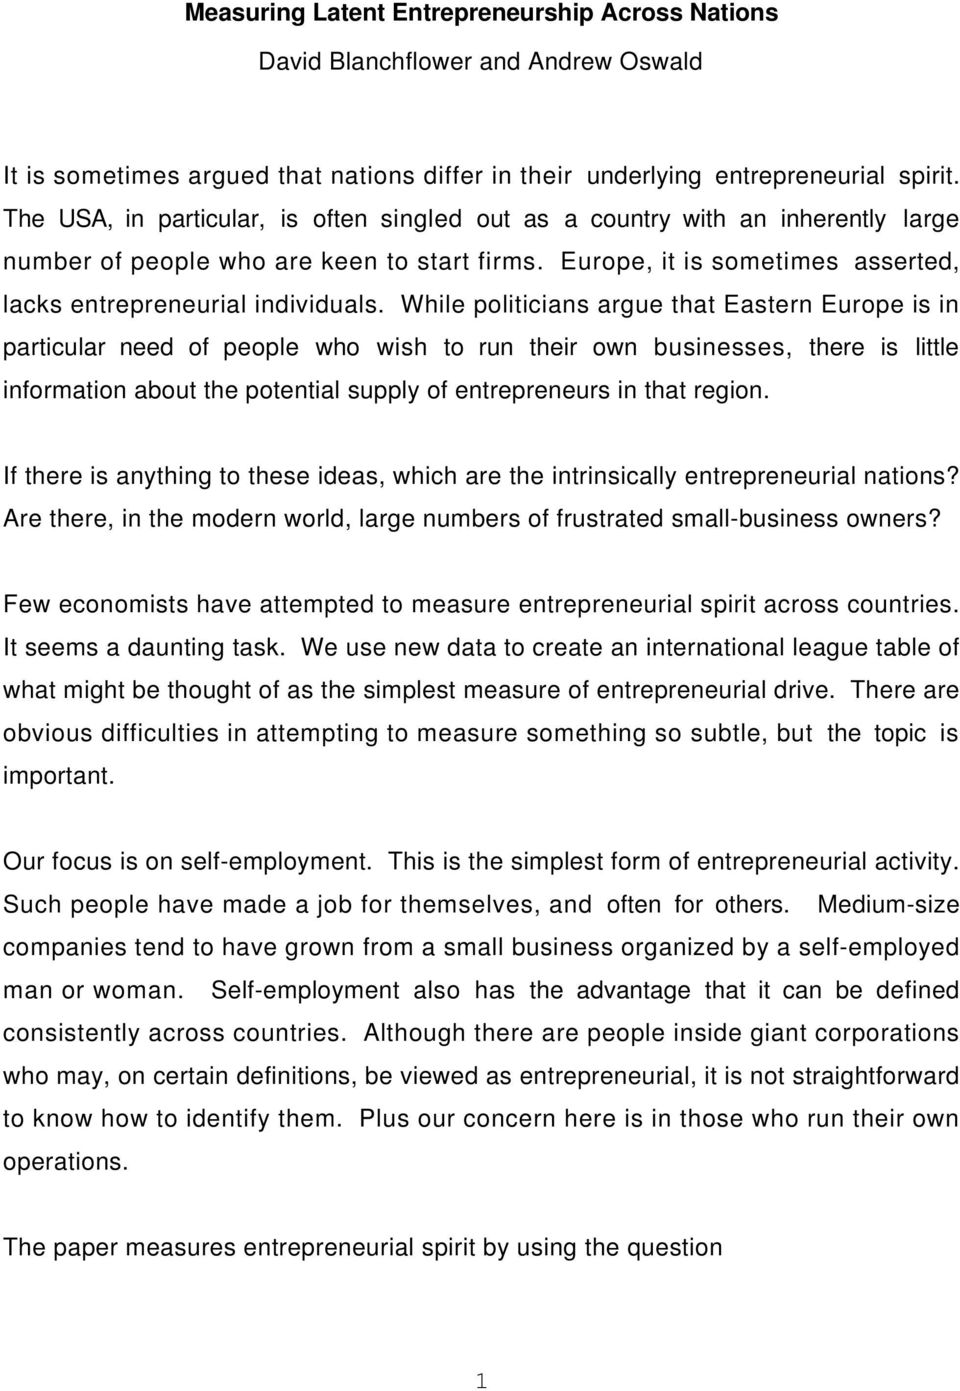 While politicians argue that Eastern Europe is in particular need of people who wish to run their own businesses, there is little information about the potential supply of entrepreneurs in that